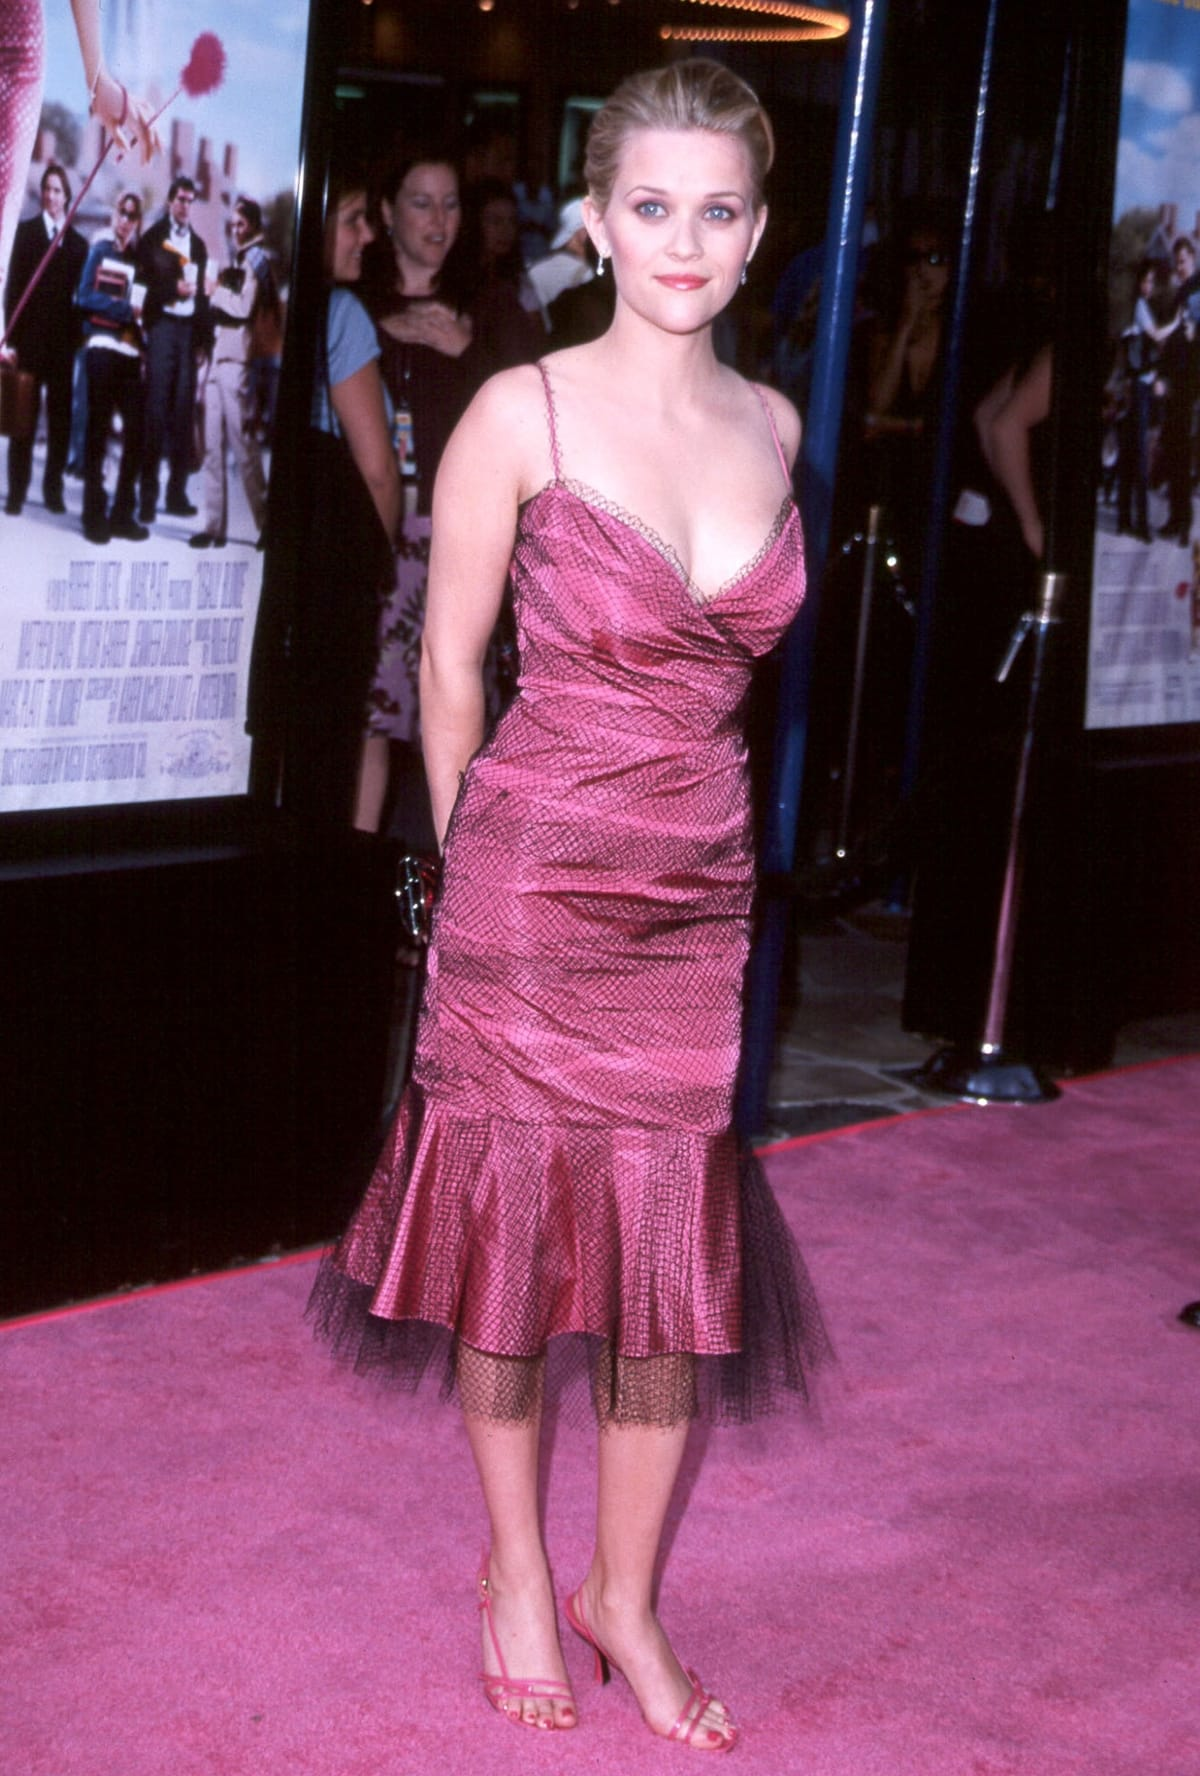 Actress Reese Witherspoon attends the premiere of Legally Blonde